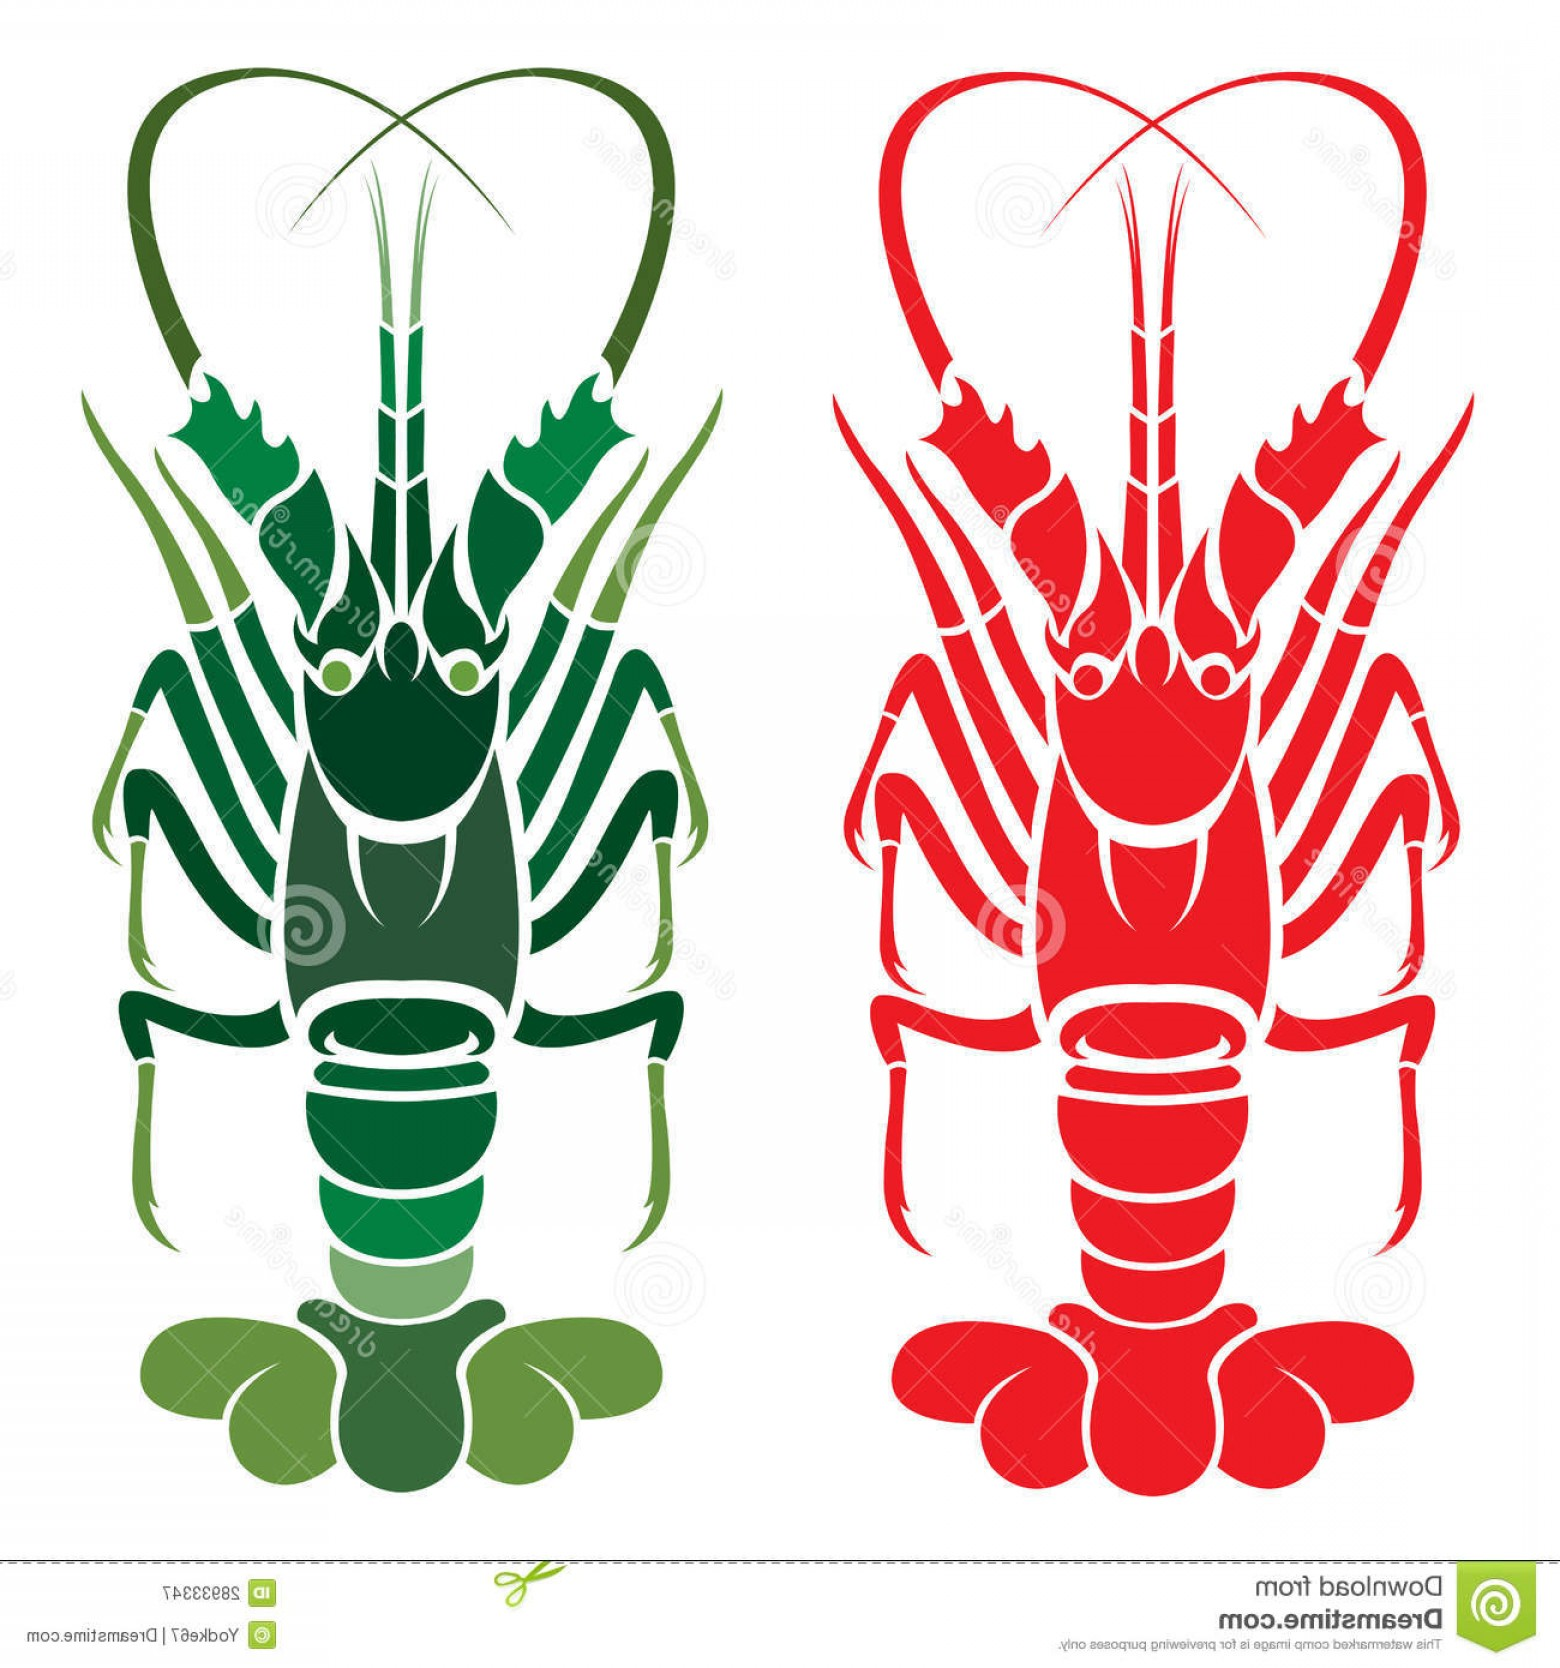 Lobster Clip Art Vector: Royalty Free Stock Photography Vector Image Lobster Image